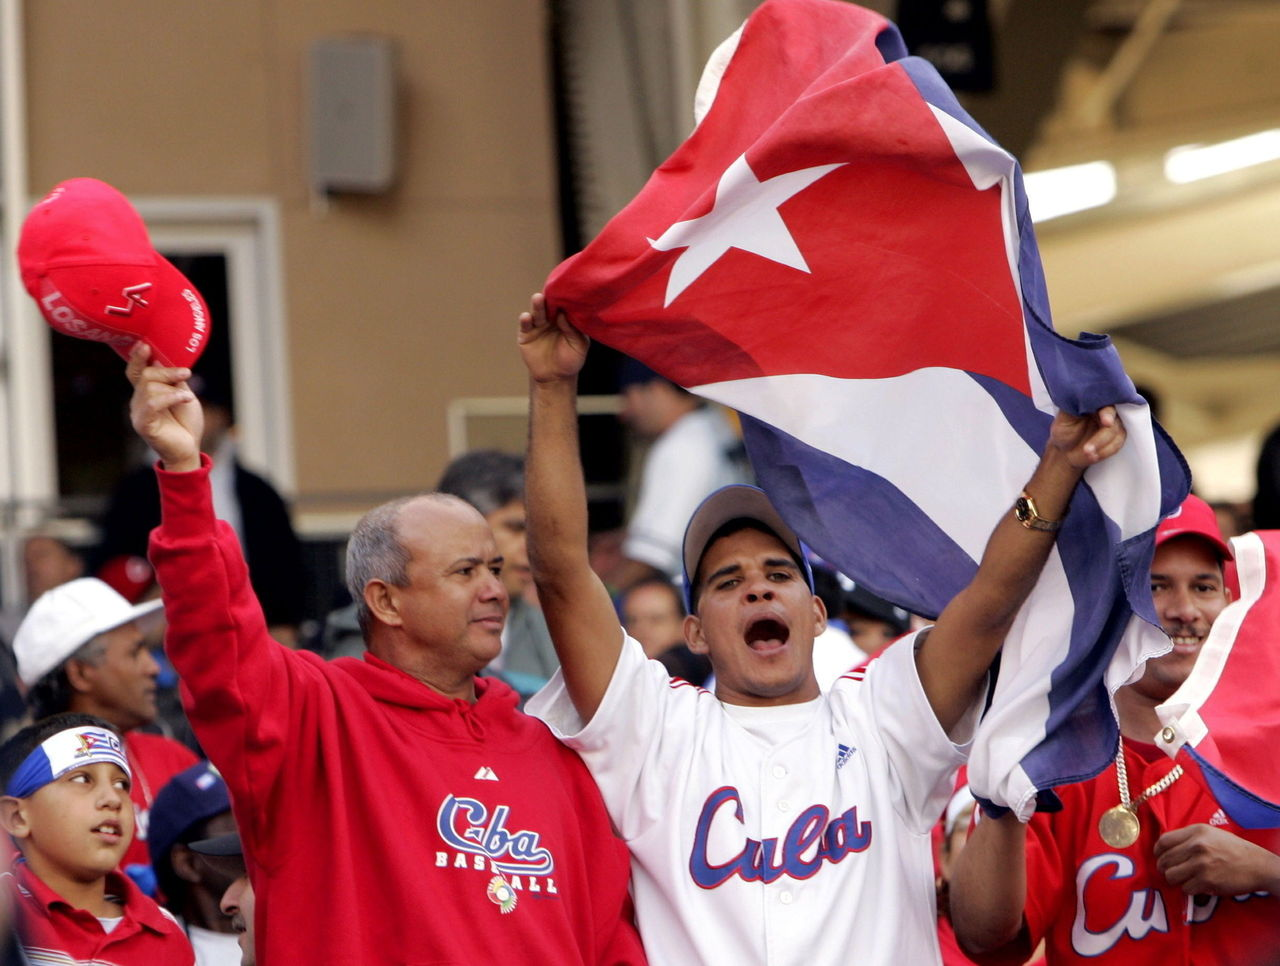 History made in Cuba!!